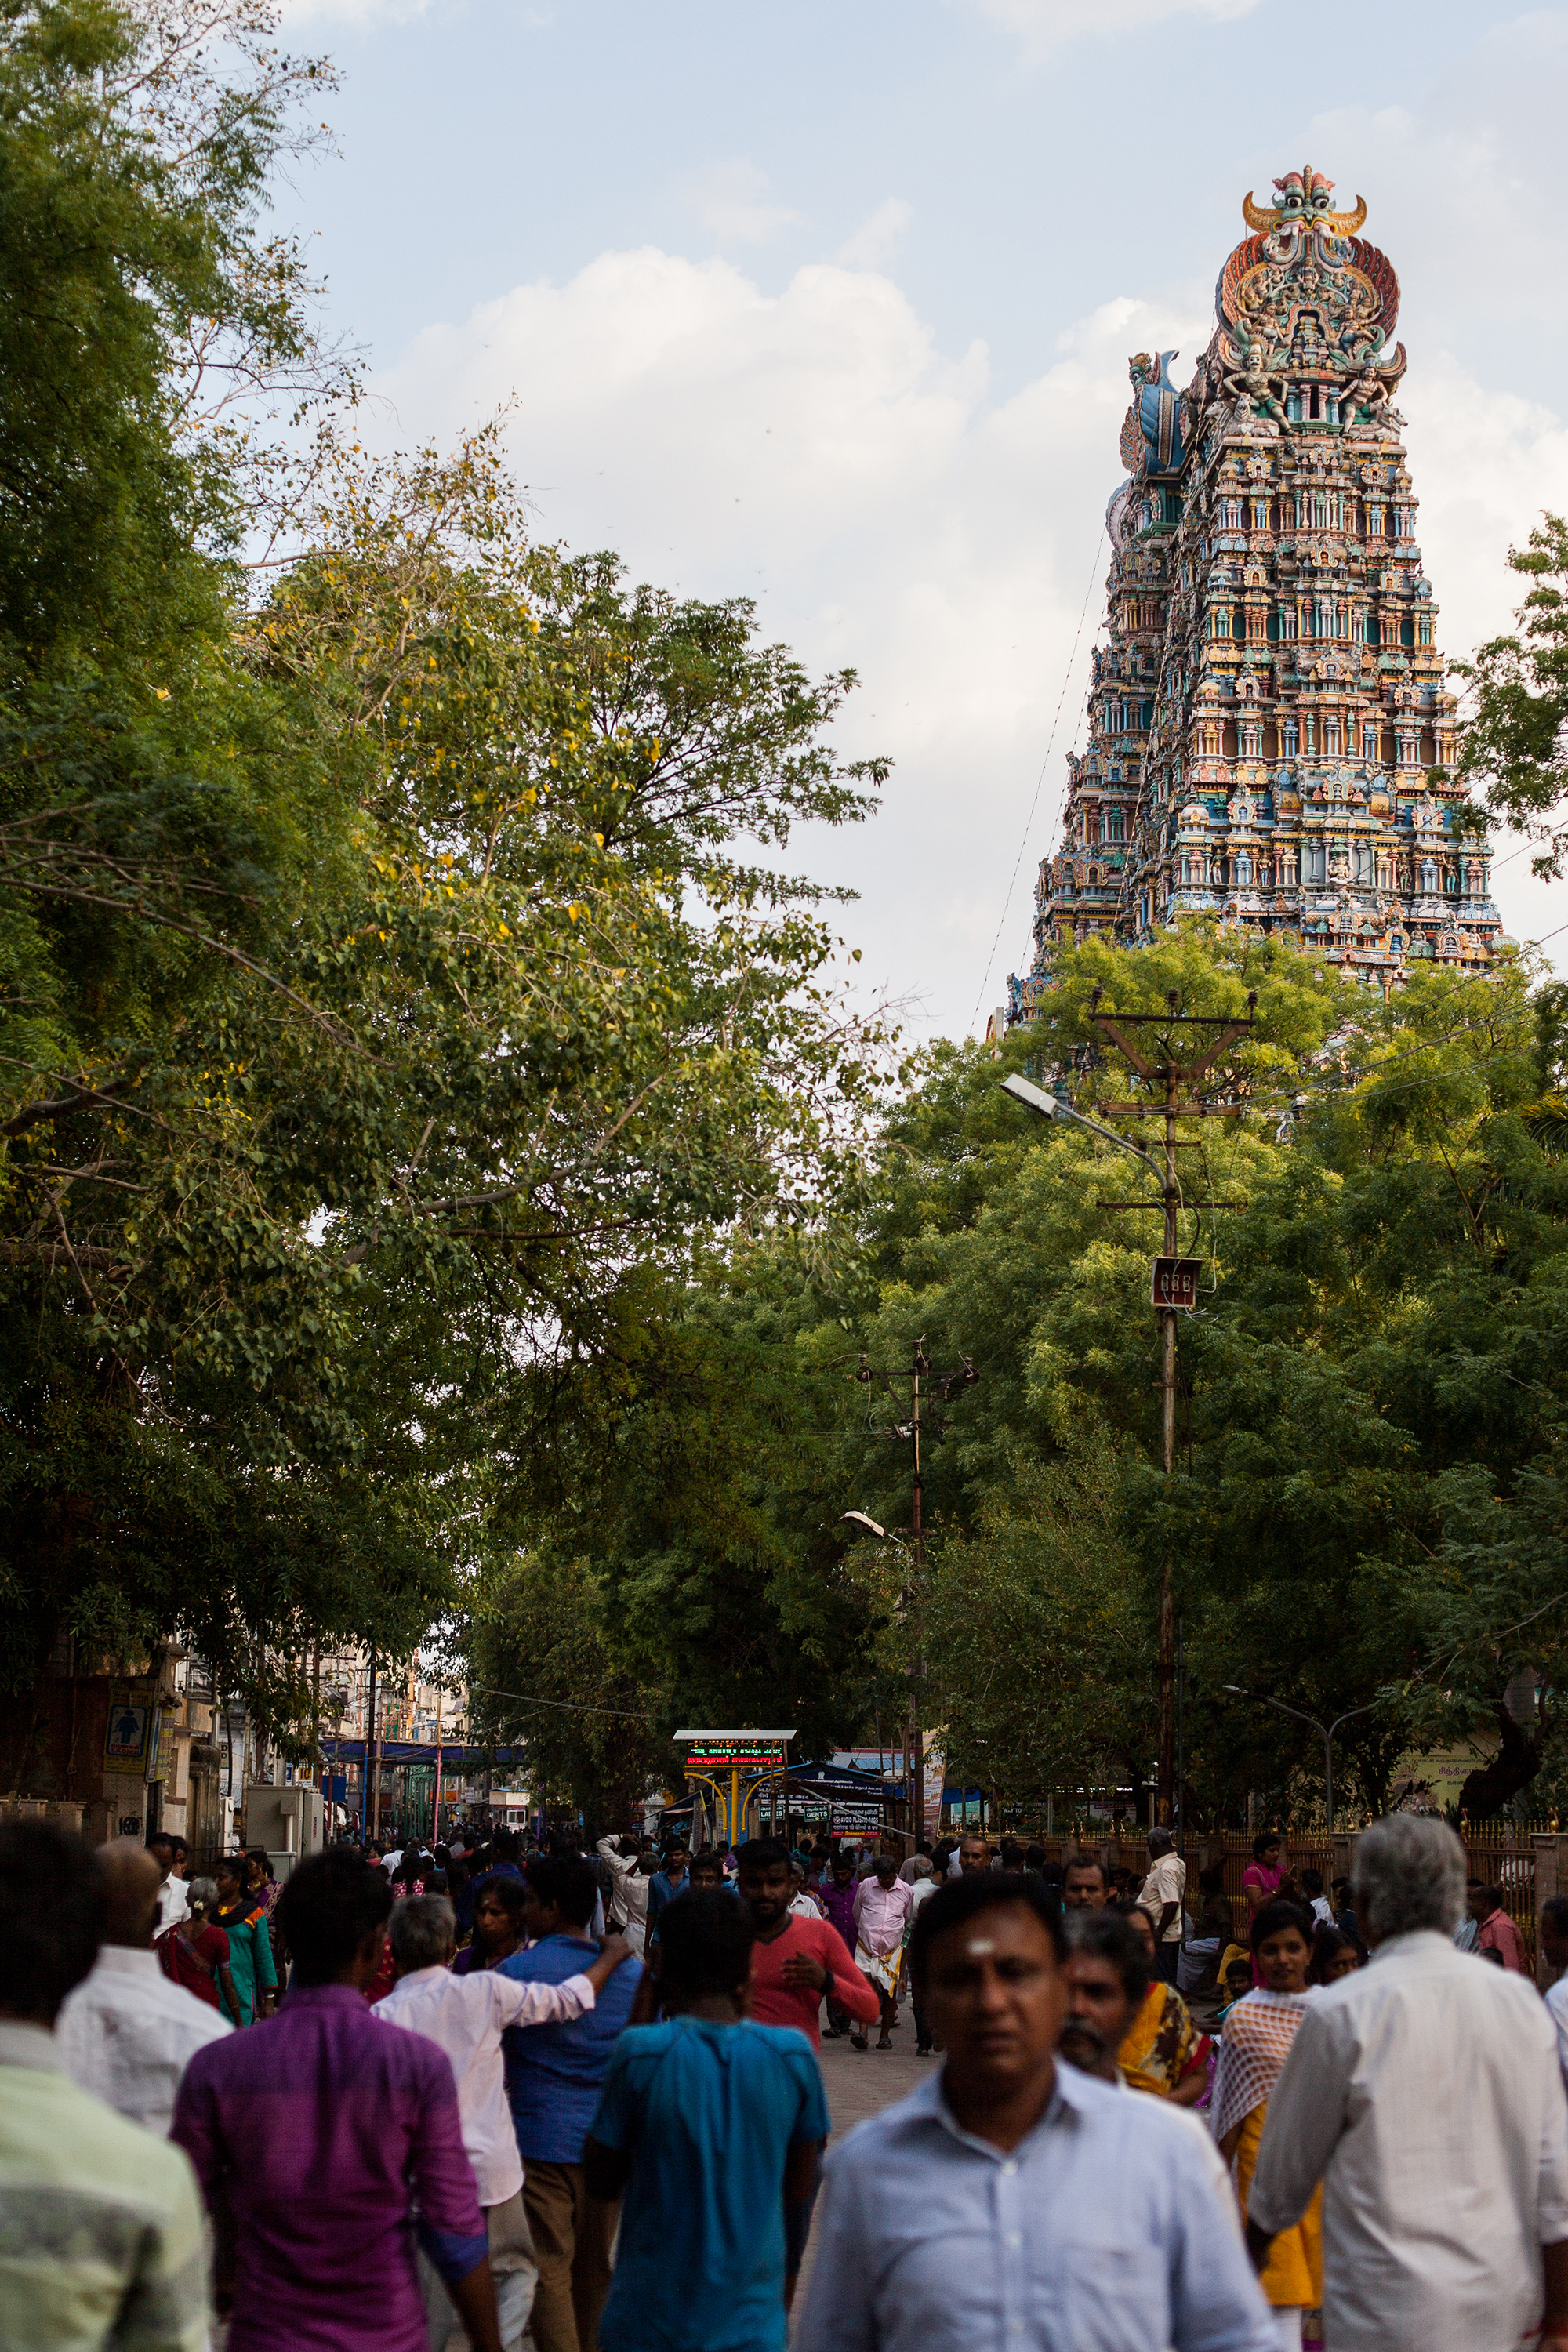 Meenaskshi temple in Madurai and its crowd